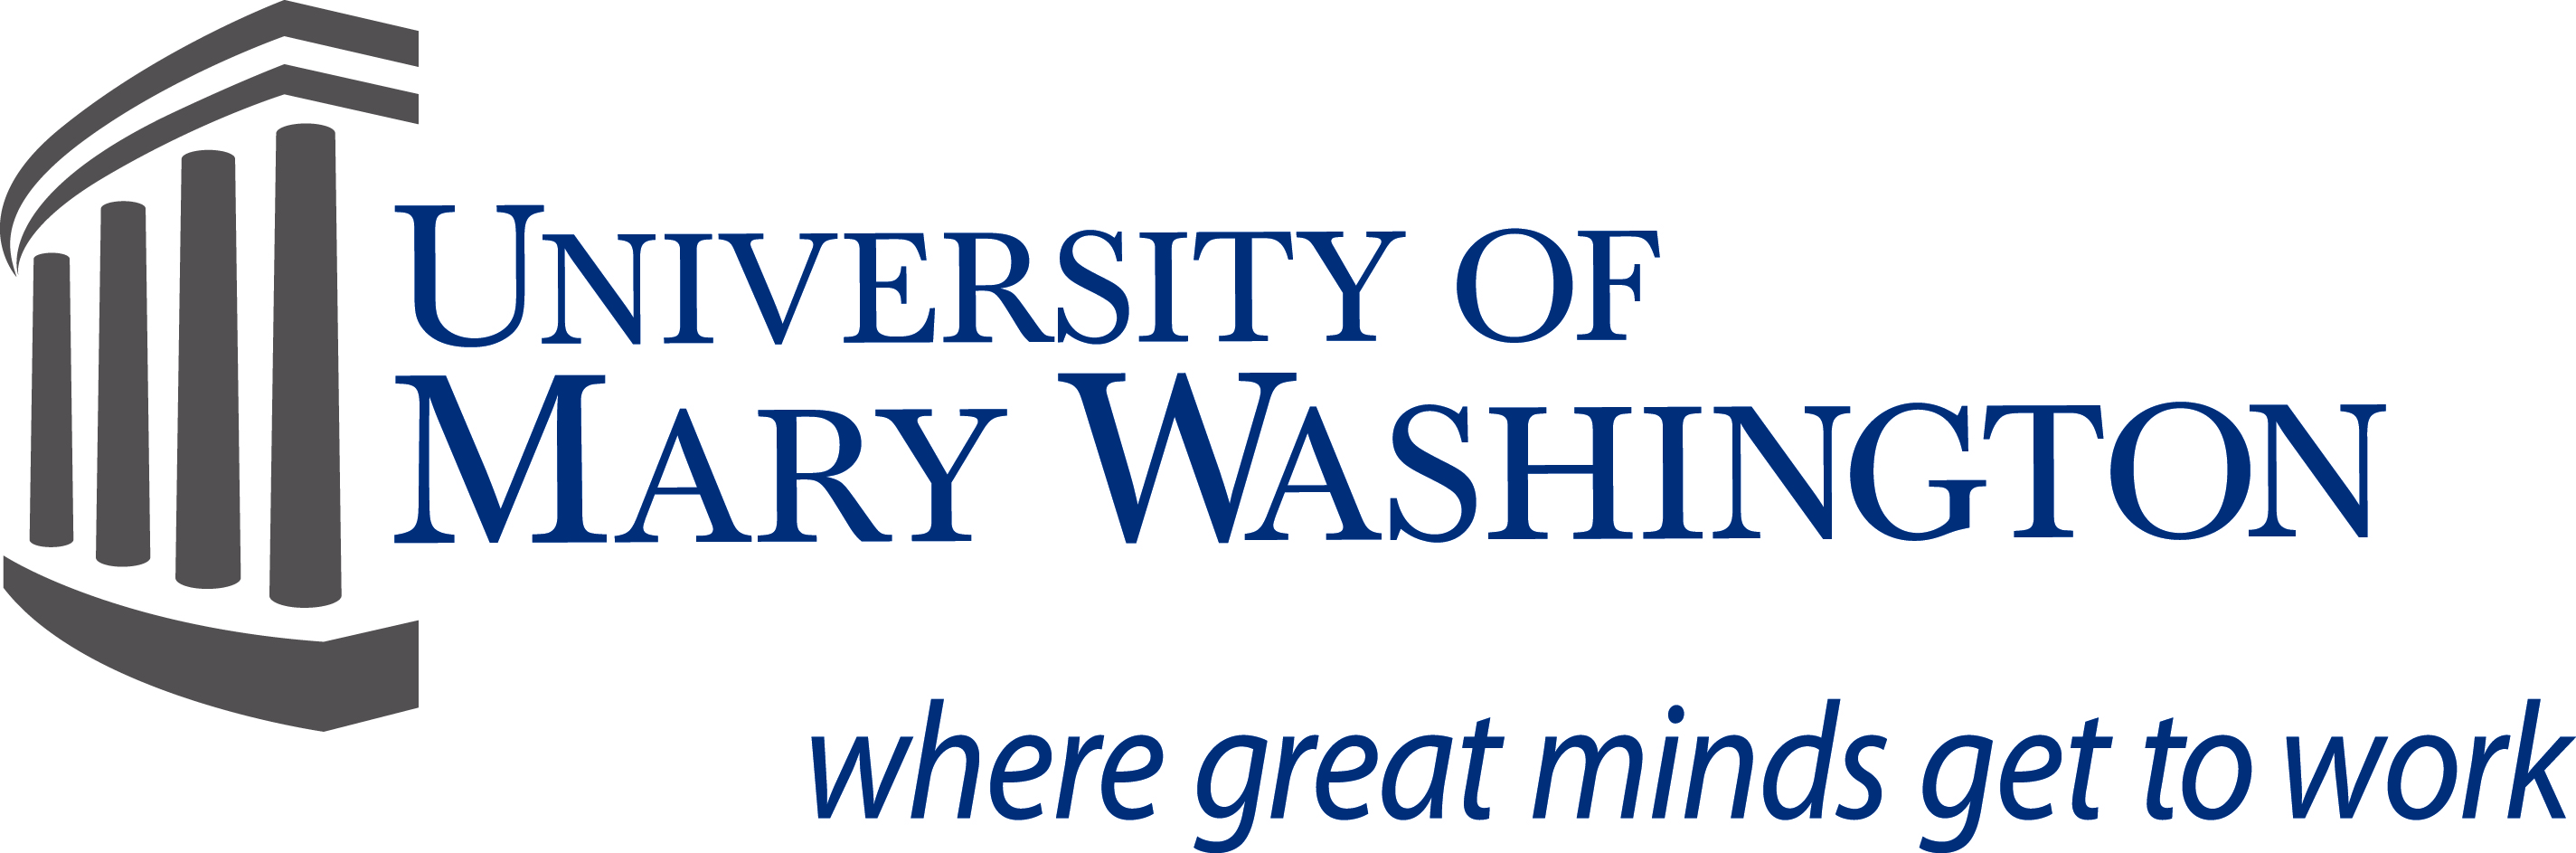 University of Mary Washington - where great minds get to work